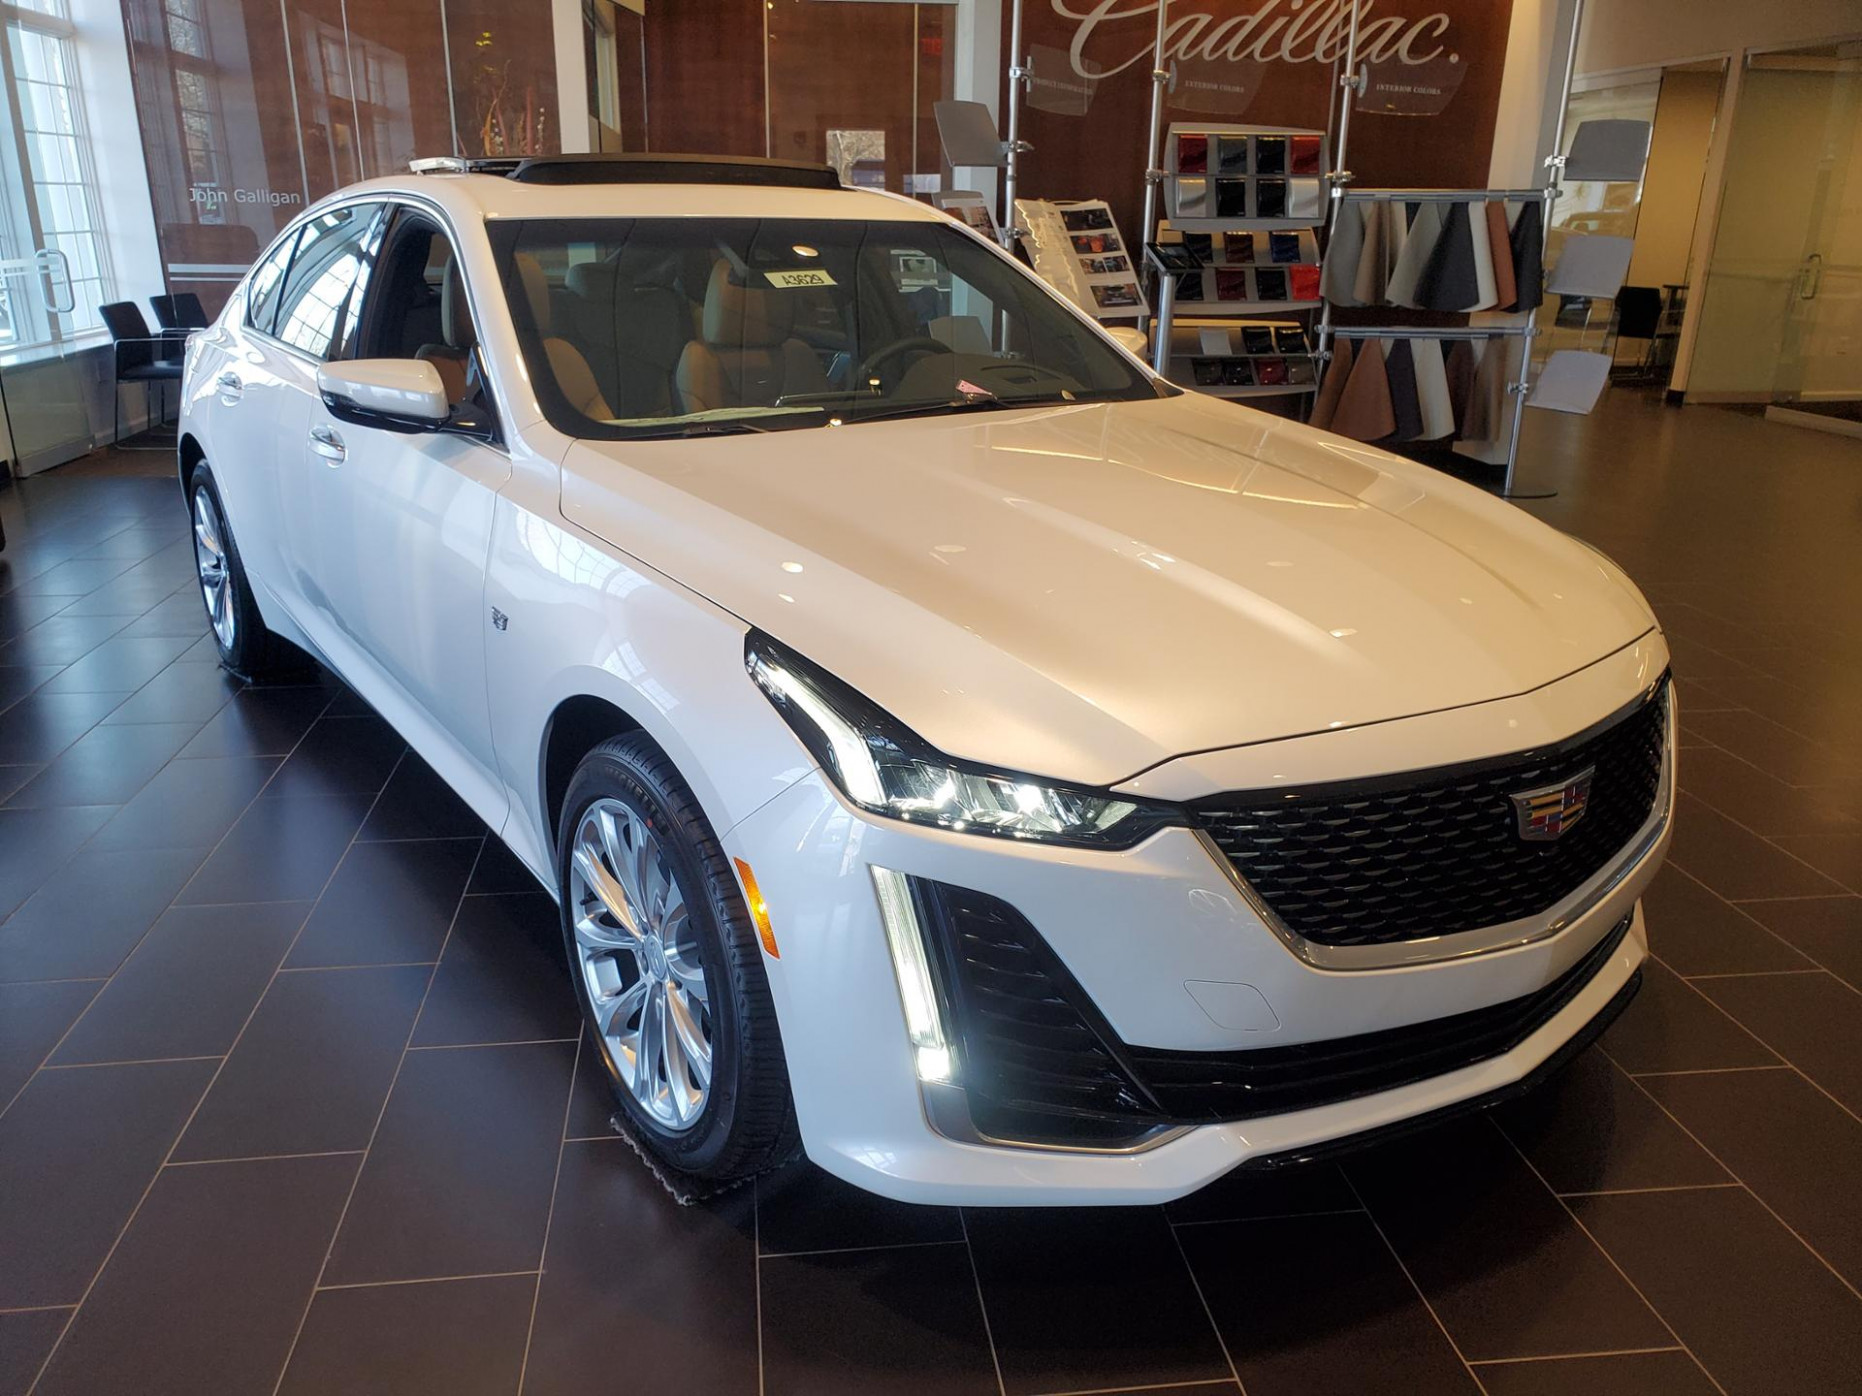 New 6 Cadillac CT6 for Sale at Buzz Chew Cadillac - 2020 cadillac for sale near me